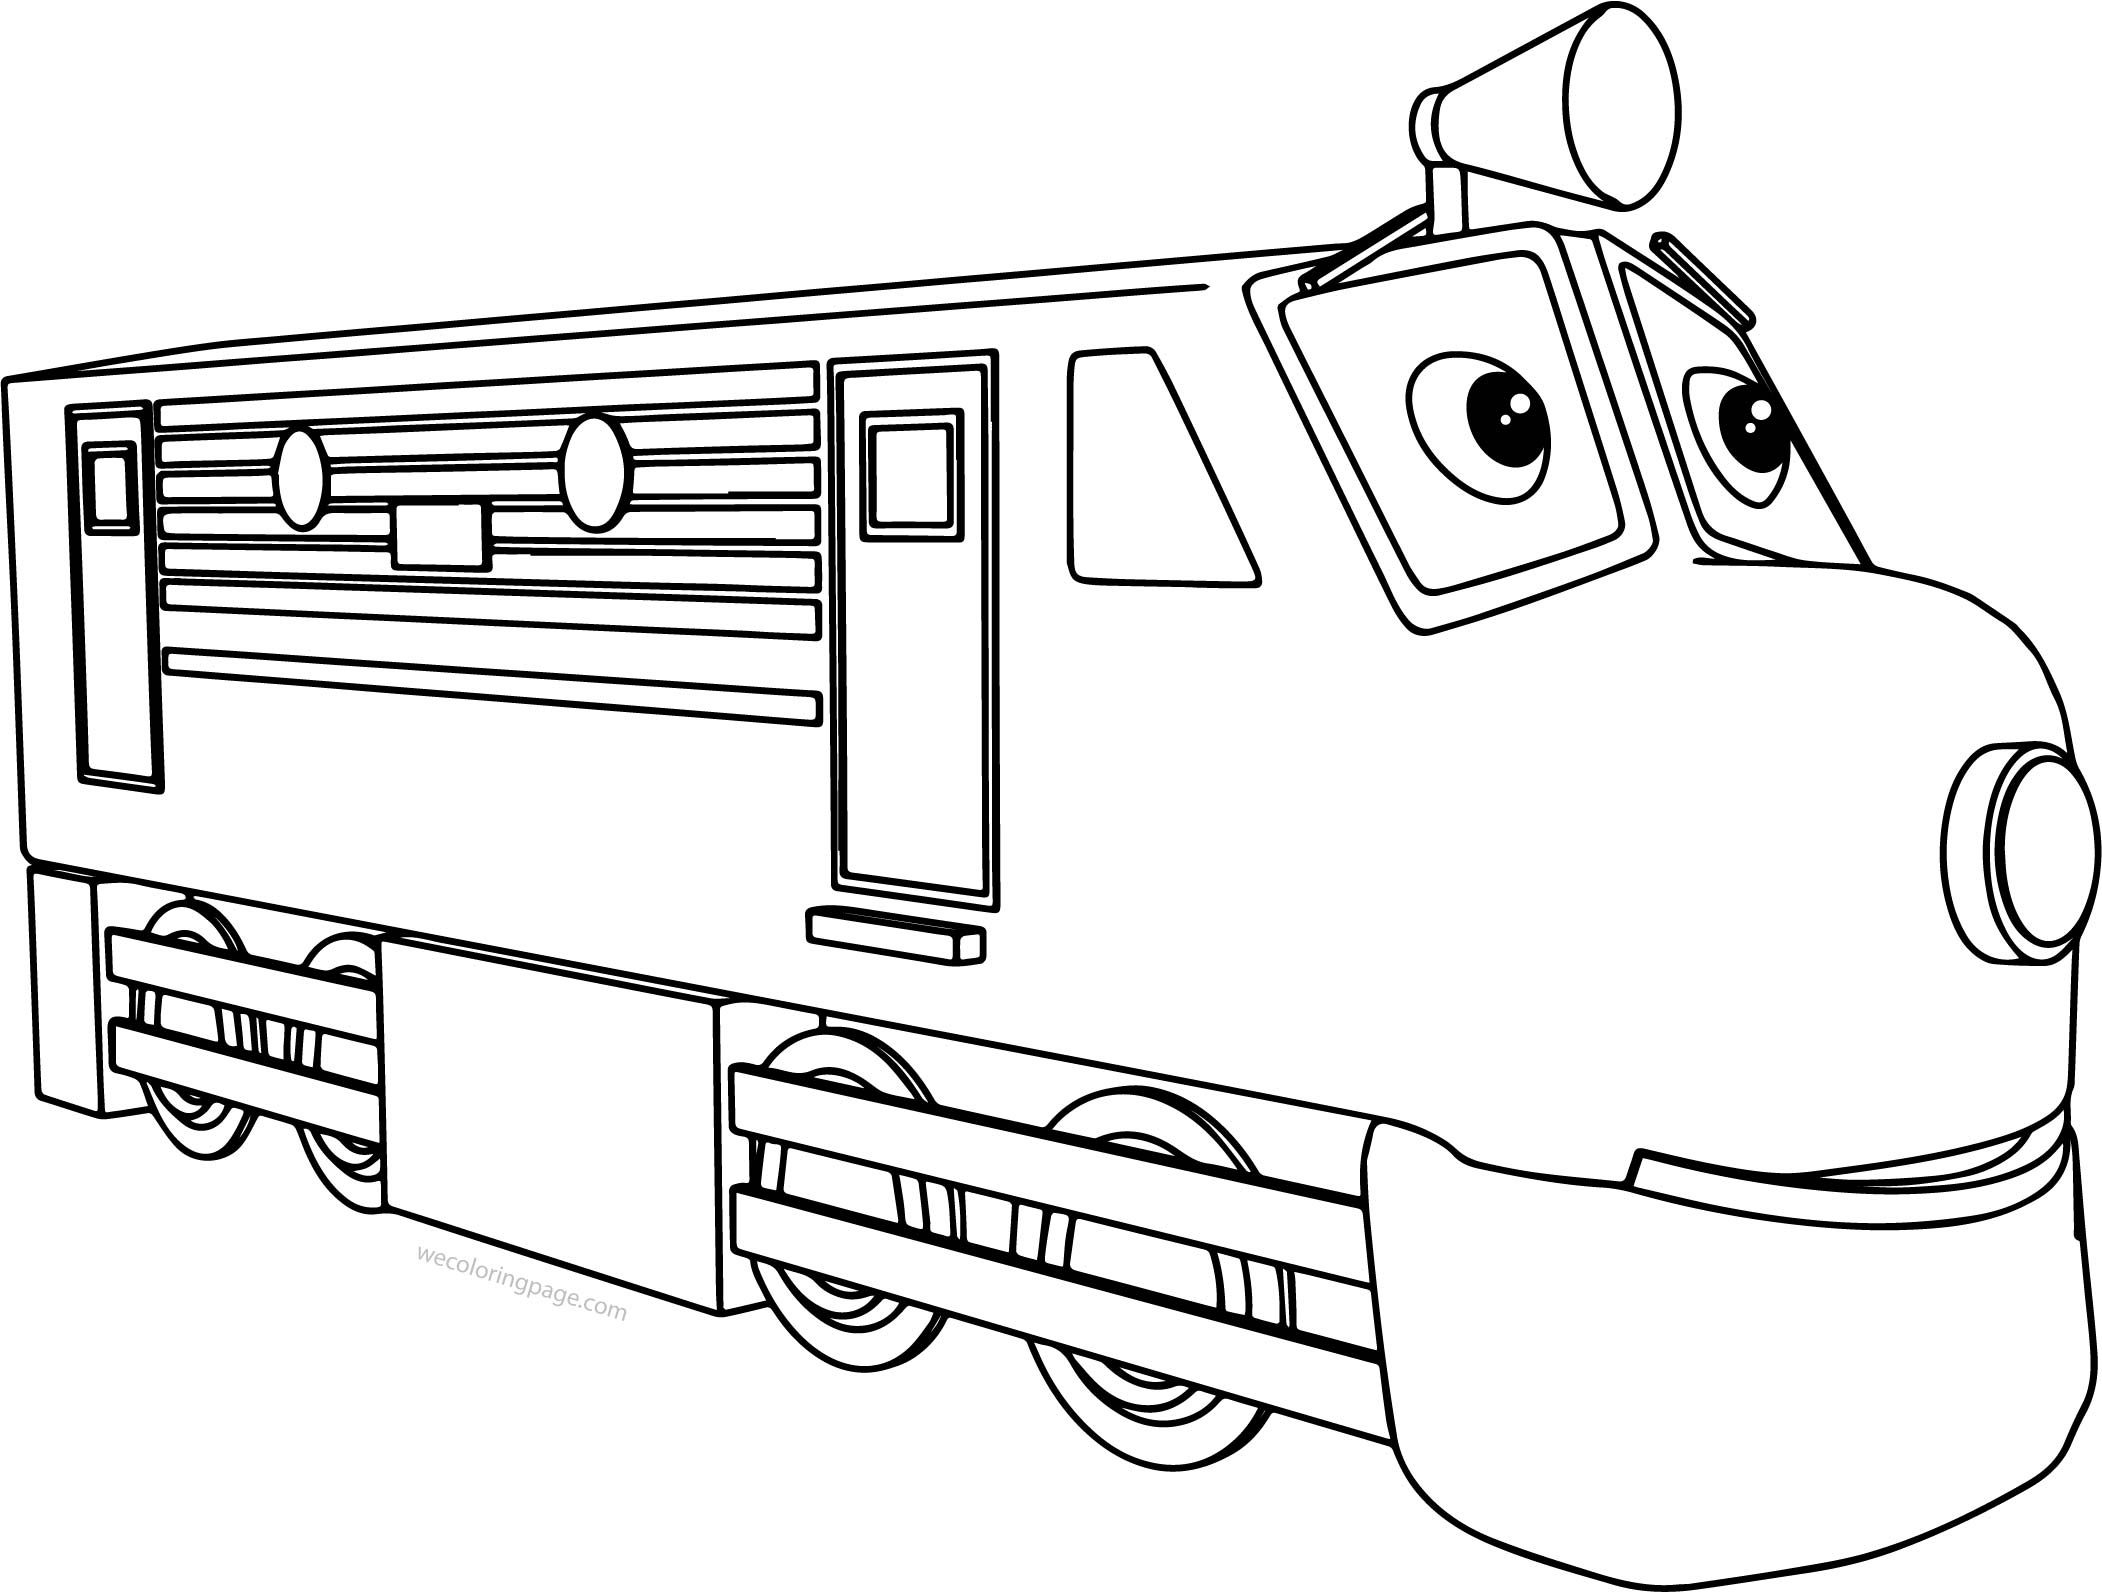 Big Chuggington Coloring Page